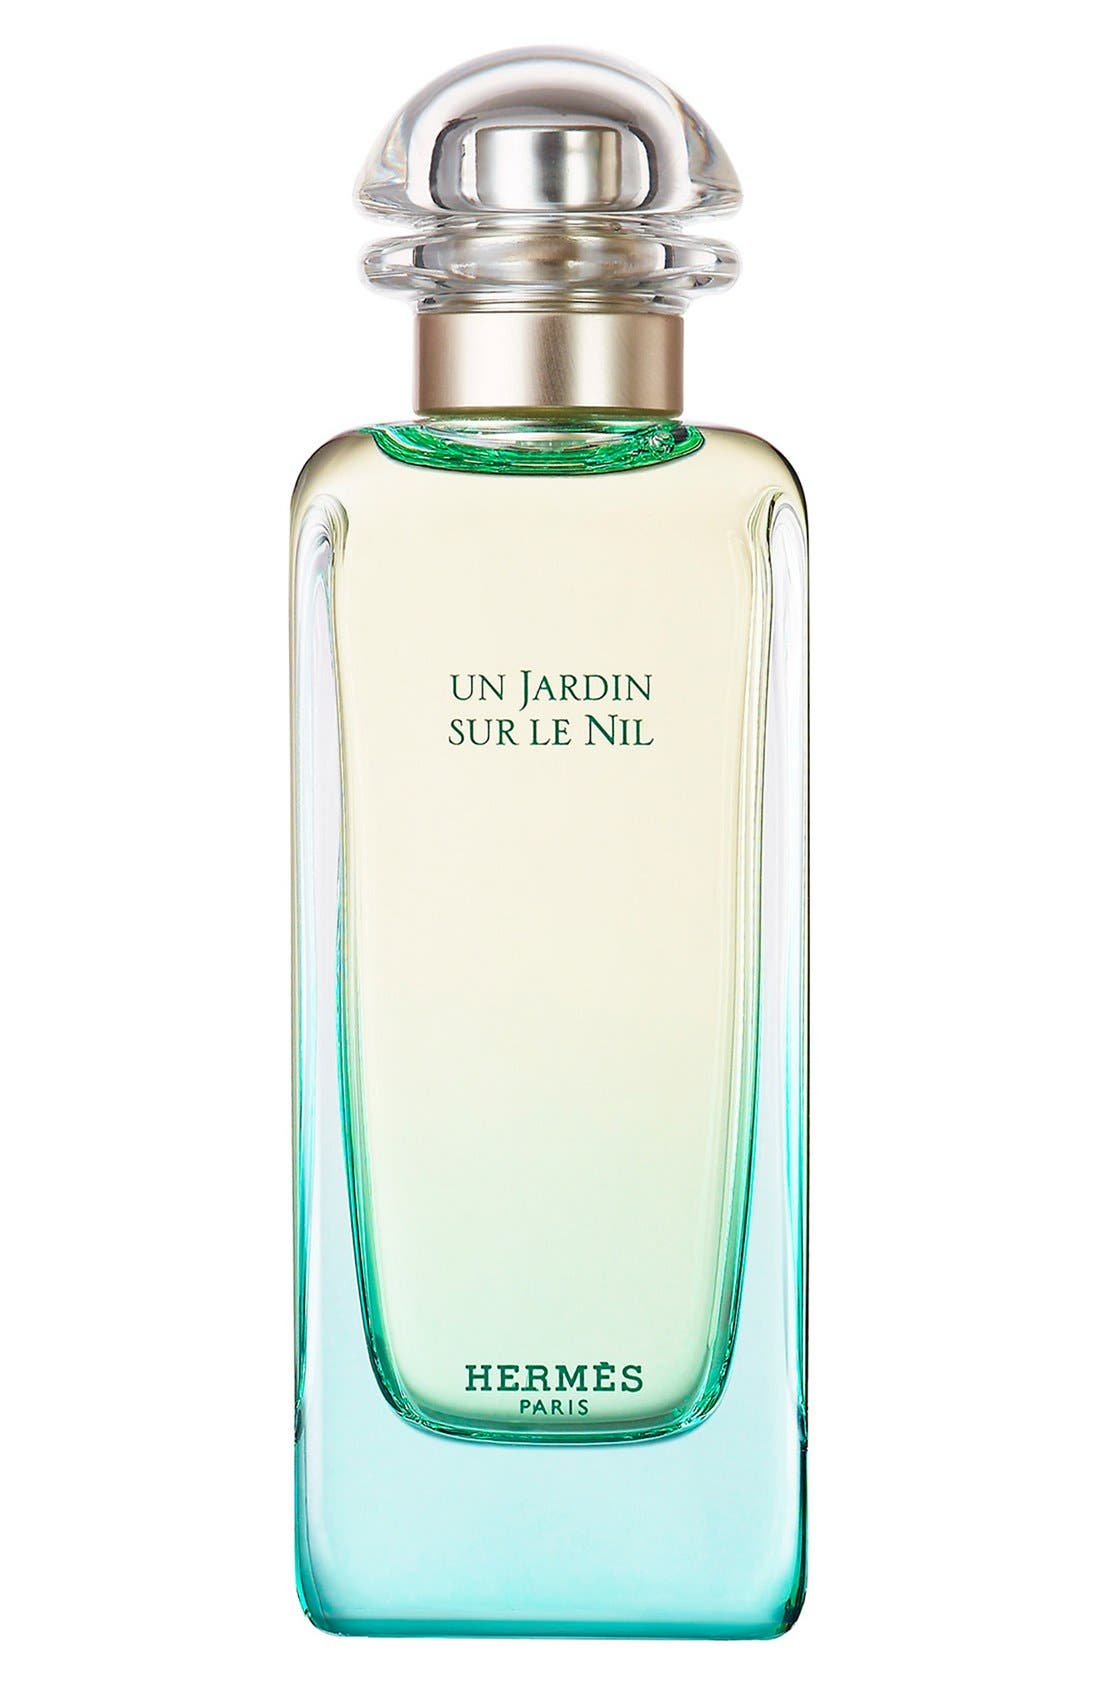 Un Jardin sur le Nil - Eau de toilette,                         Main,                         color, NO COLOR